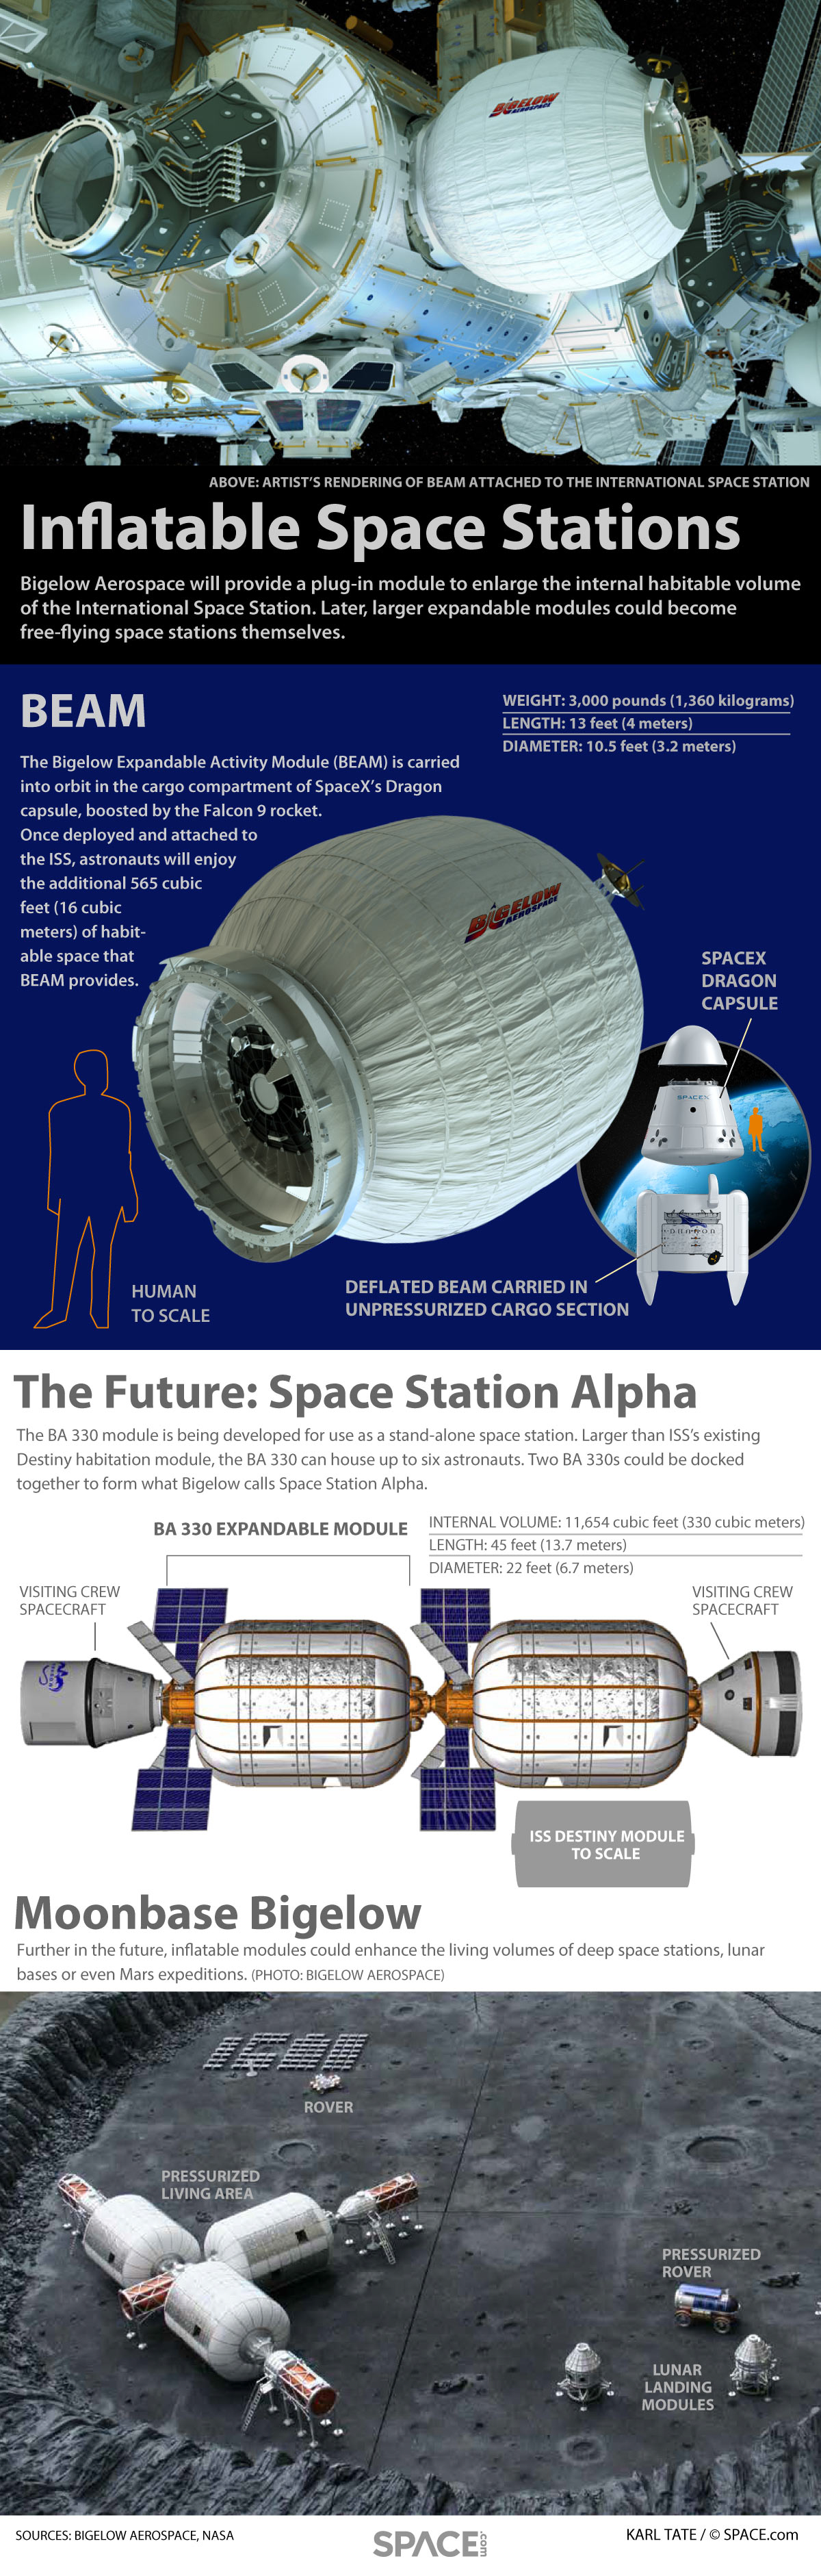 Inflatable Space Stations of Bigelow Aerospace (Infographic)